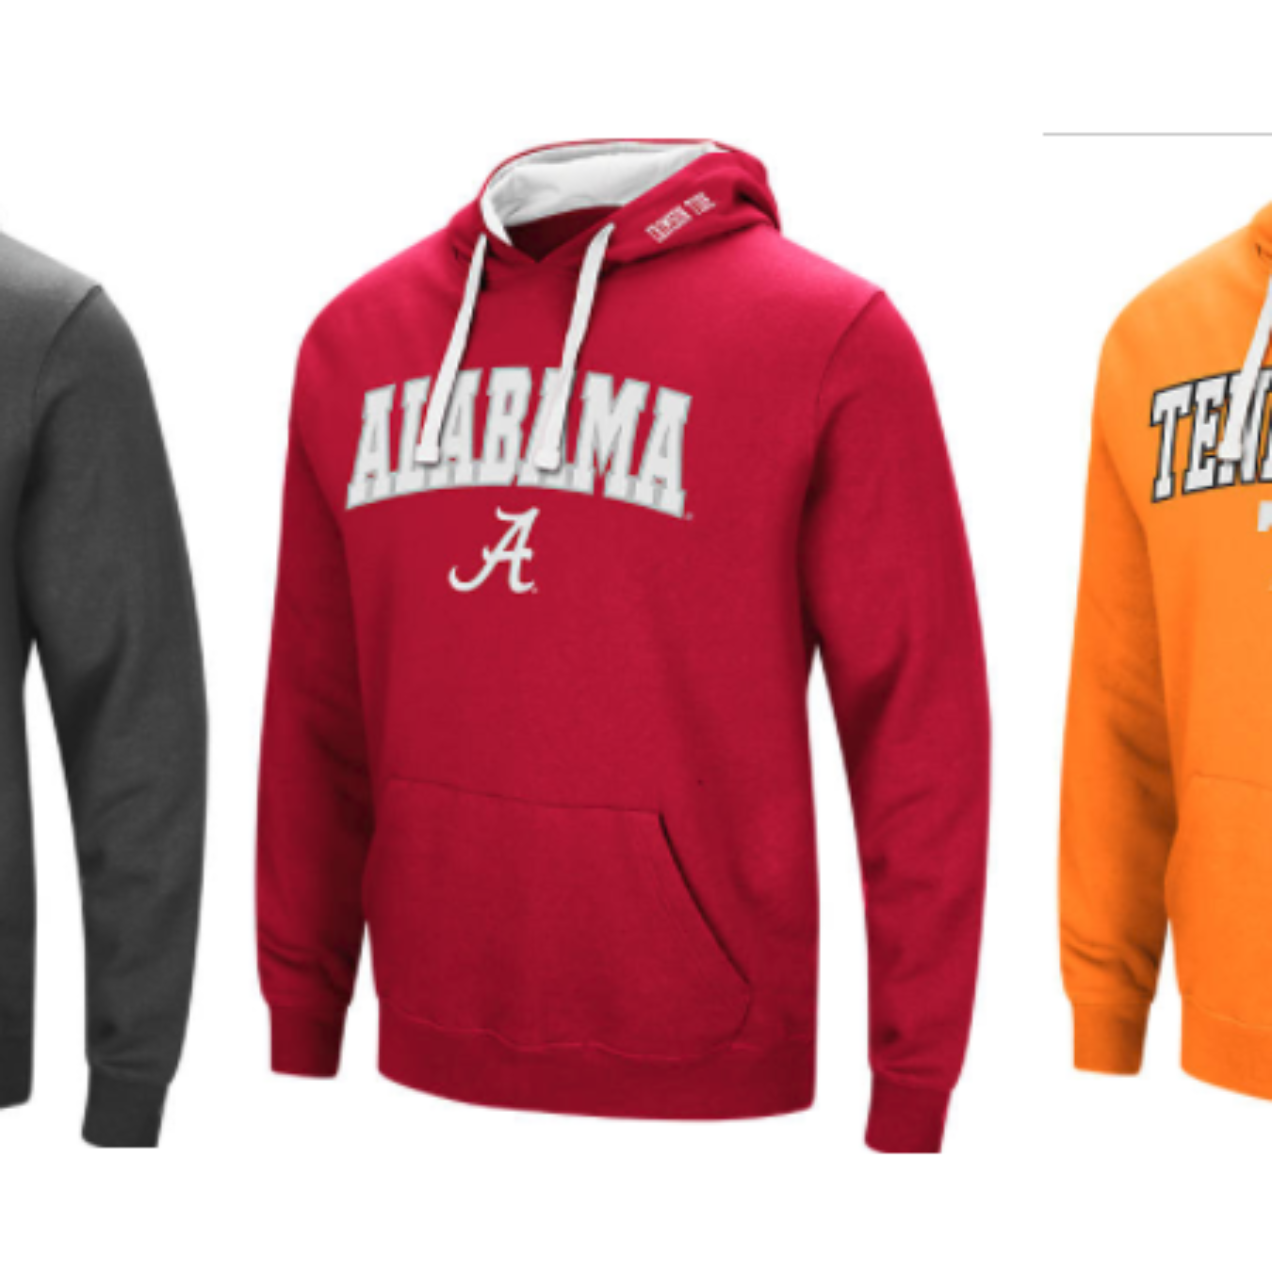 Men's College Hoodie Only $15.99 Shipped (Regular $40)!